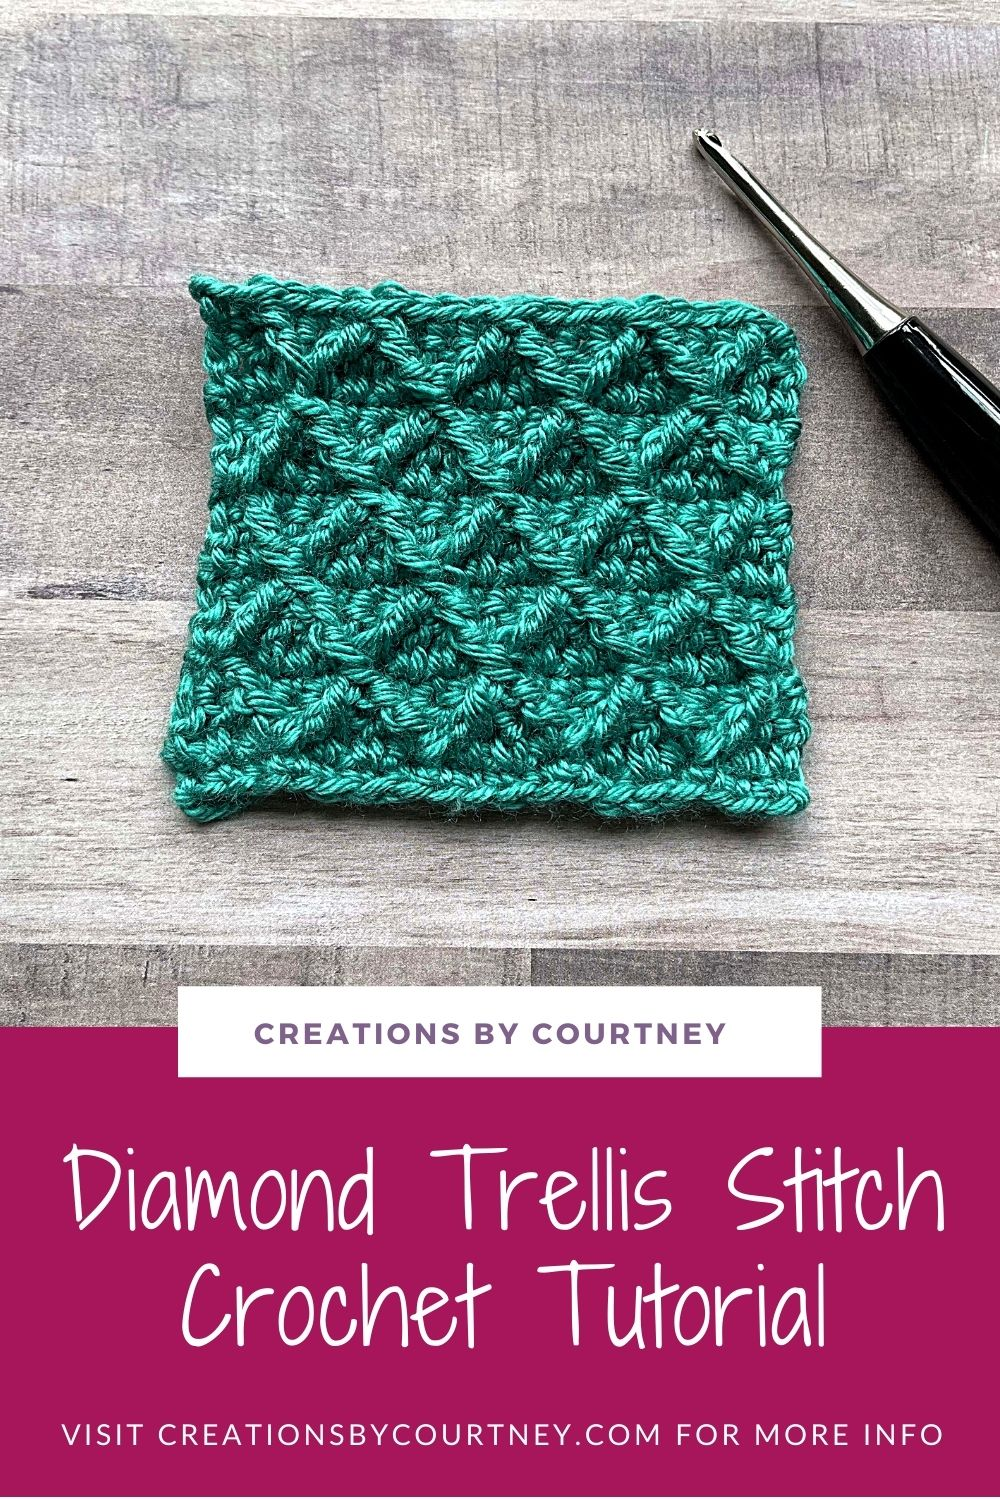 Let me show you how to crochet the diamond trellis stitch with picture and video! It's a fun stitch to make that creates 3D texture for any crochet project with front post treble crochet, double crochet and single crochet stitches.